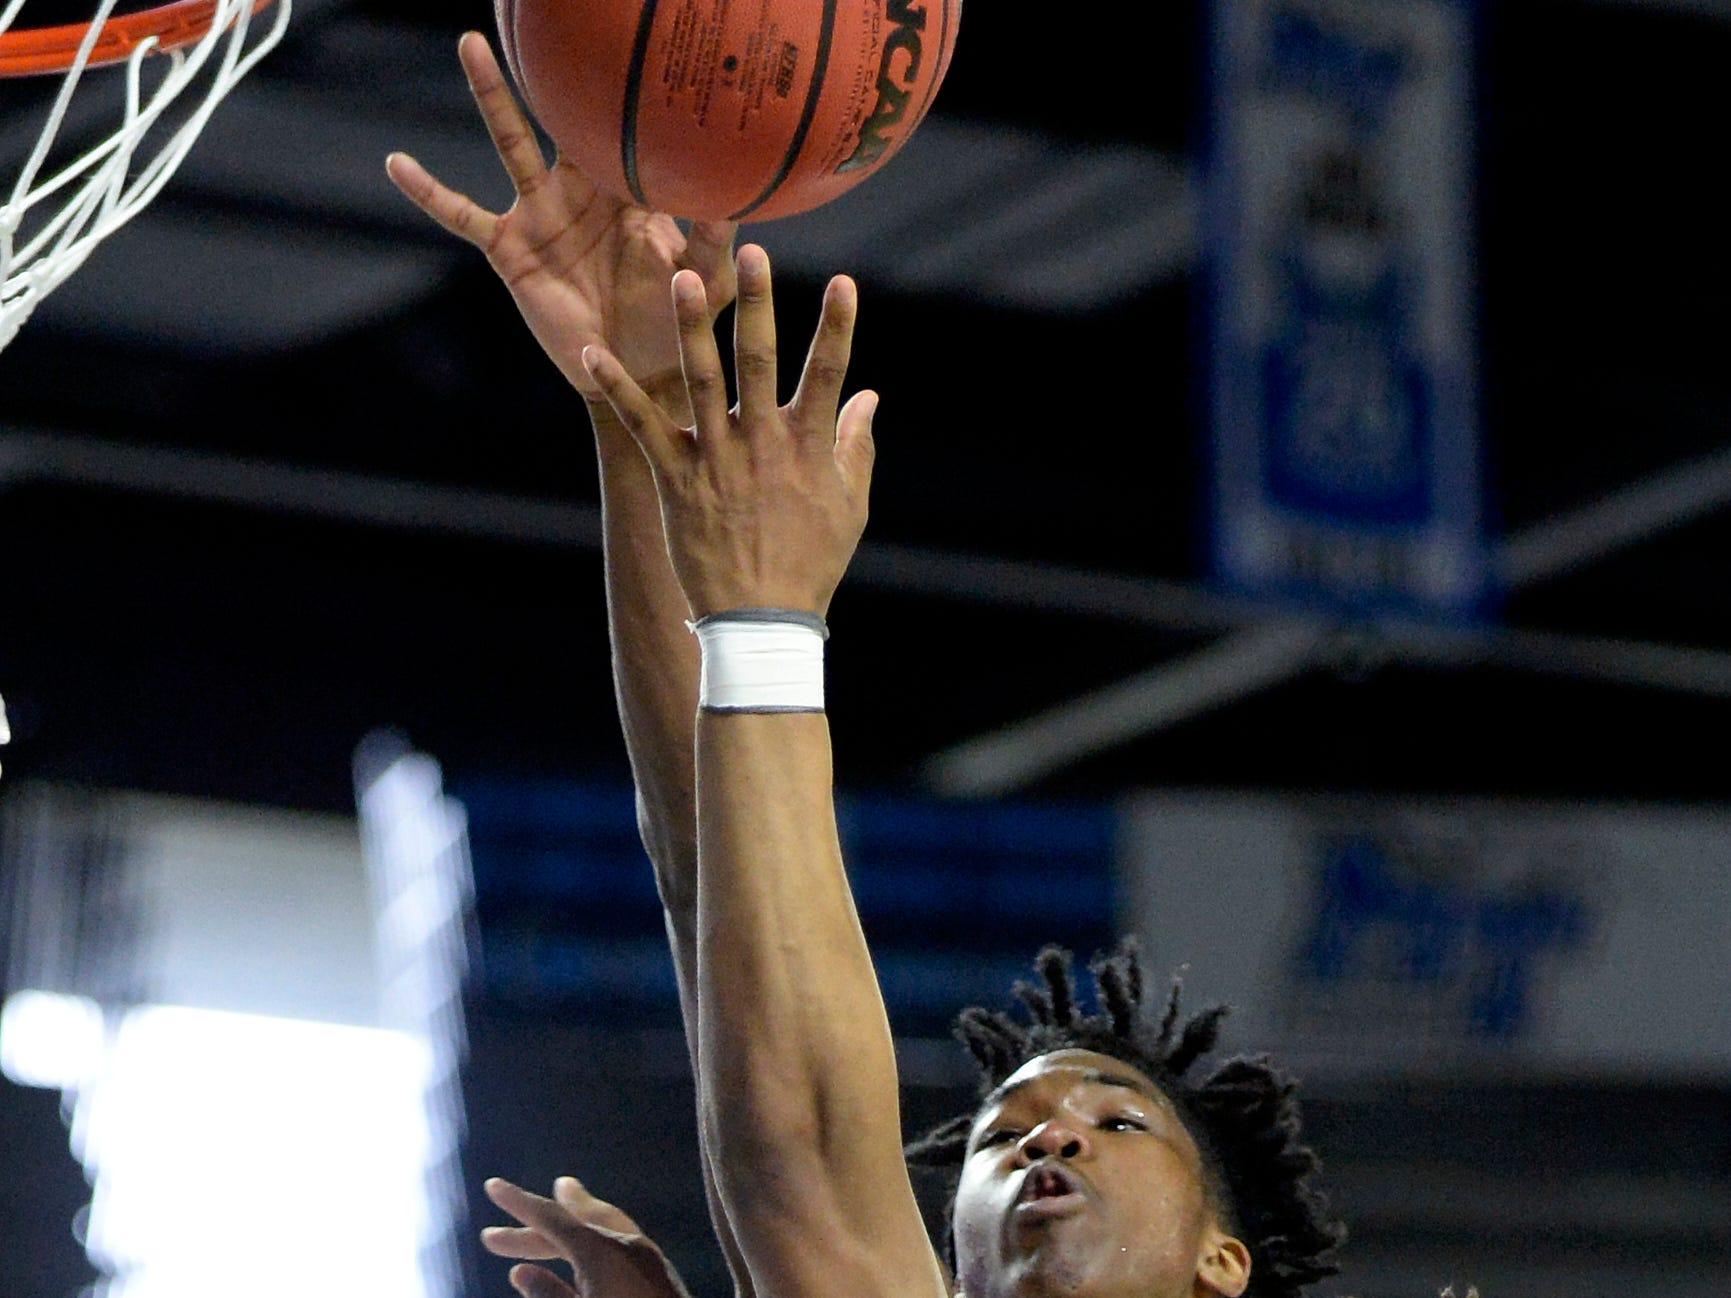 East Nashville guard Taras Carter (0) shoots against Howard forward Kerrick Thorne (14) during the second half of an Class AA boys' state basketball quarterfinal game Wednesday, March 13, 2019, in Murfreesboro, Tenn. East Nashville won 78-75.